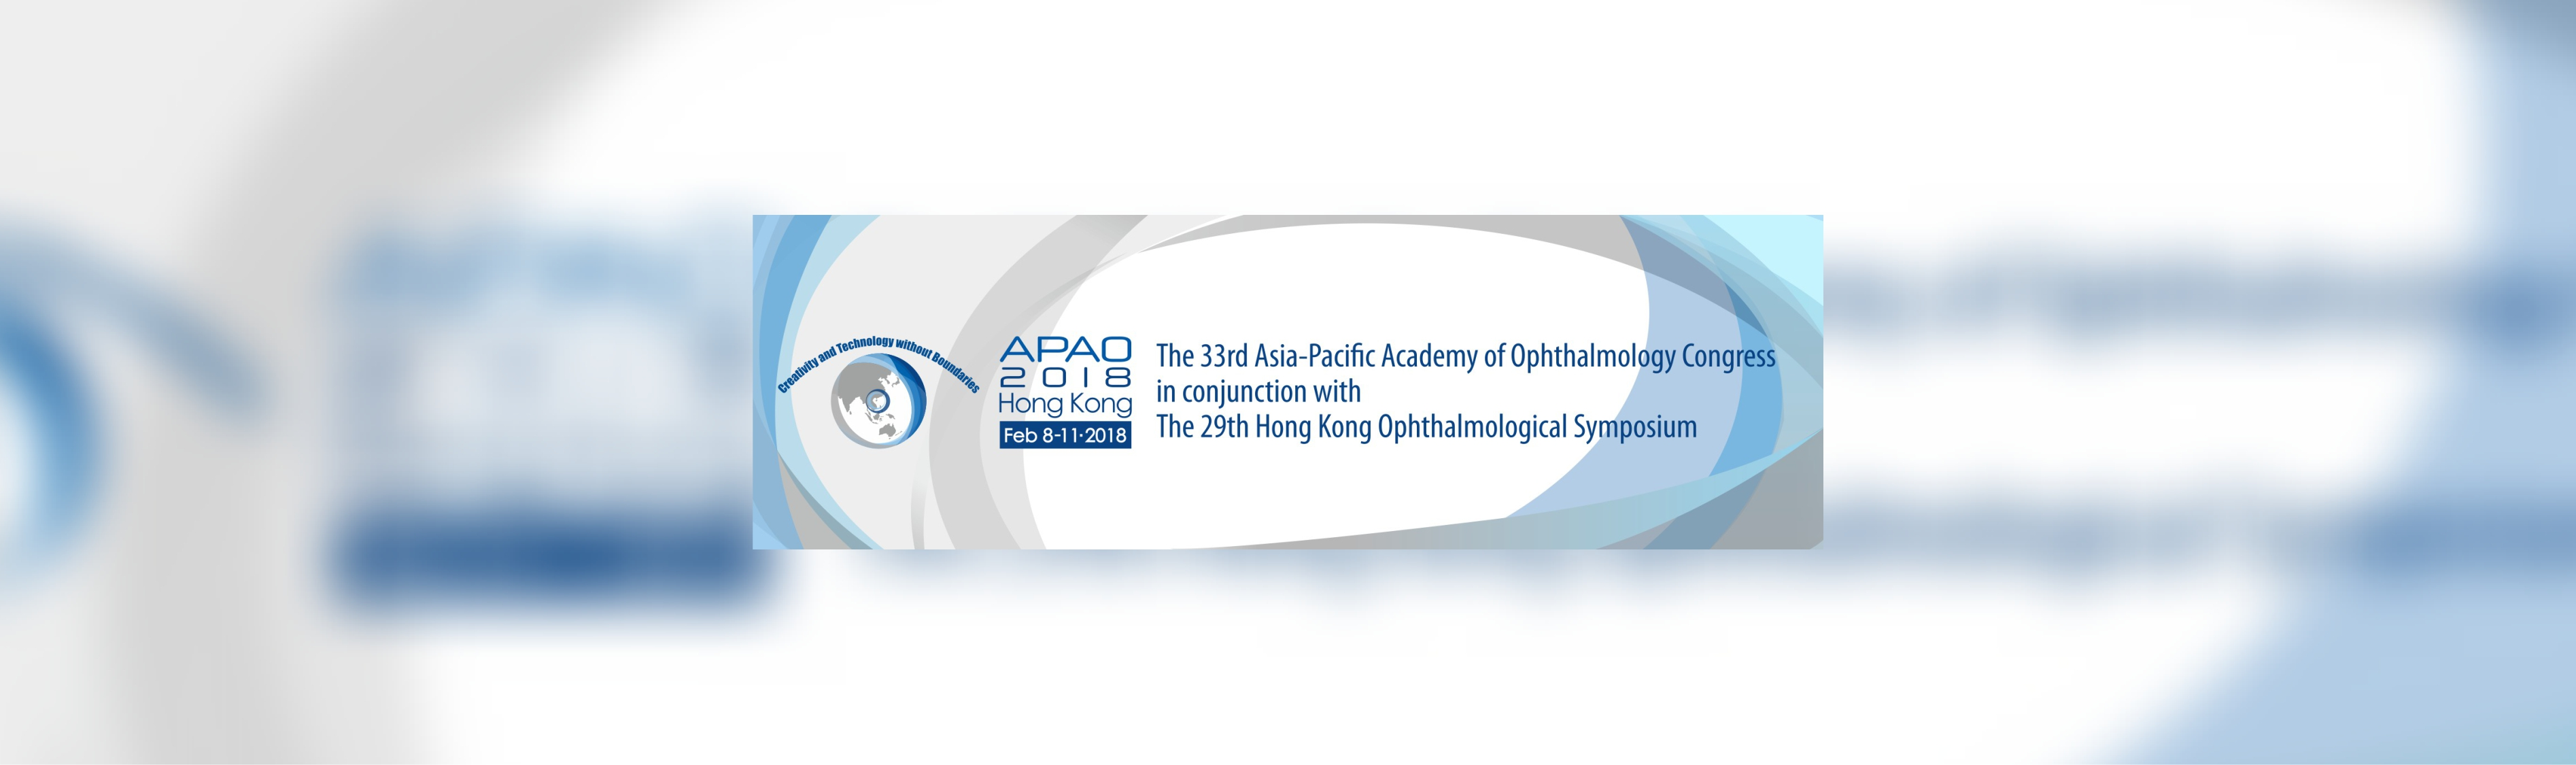 APAO 2018 - The 33rd Asia-Pacific Academy of Ophthalmology Congress in conjunction with The 29th Hon